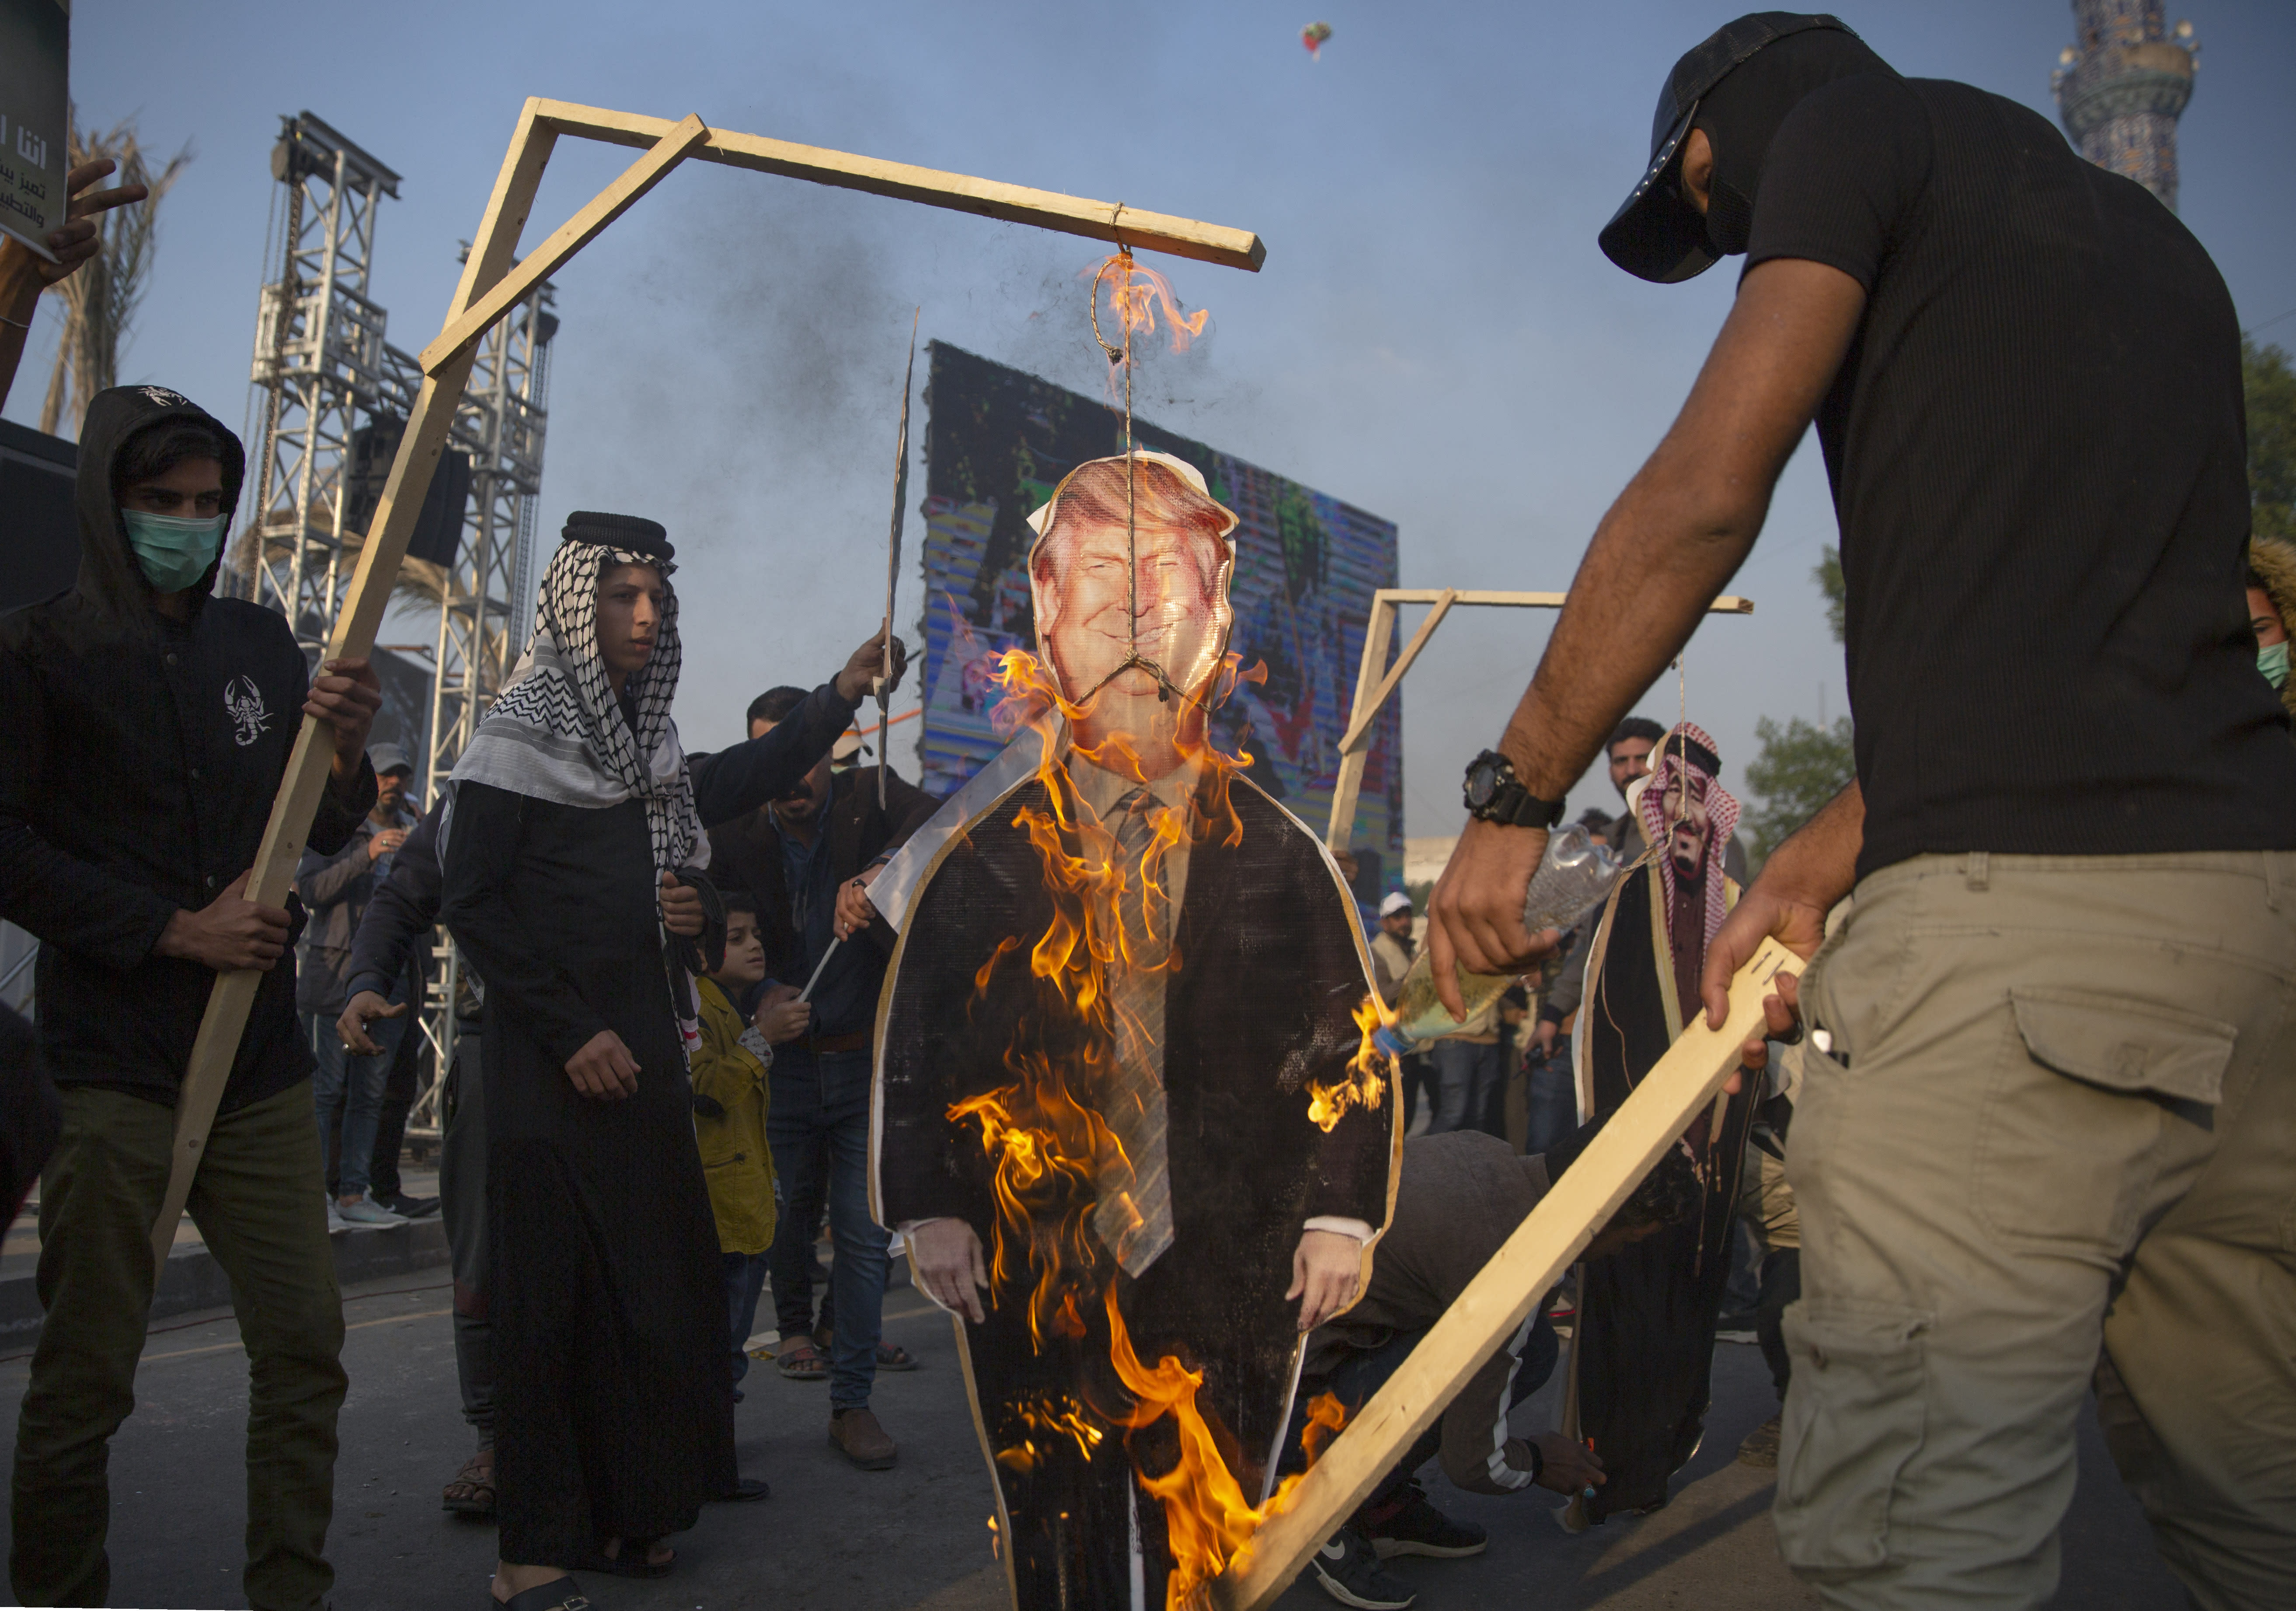 Protesters set on fire a cardboard cutout that depicts US President Donald Trump and hung to a gallows, during a rally for the Shiite group Asaib Ahl al-Haq, in Baghdad, Iraq, Saturday, Dec. 14, 2019. (AP Photo/Nasser Nasser)